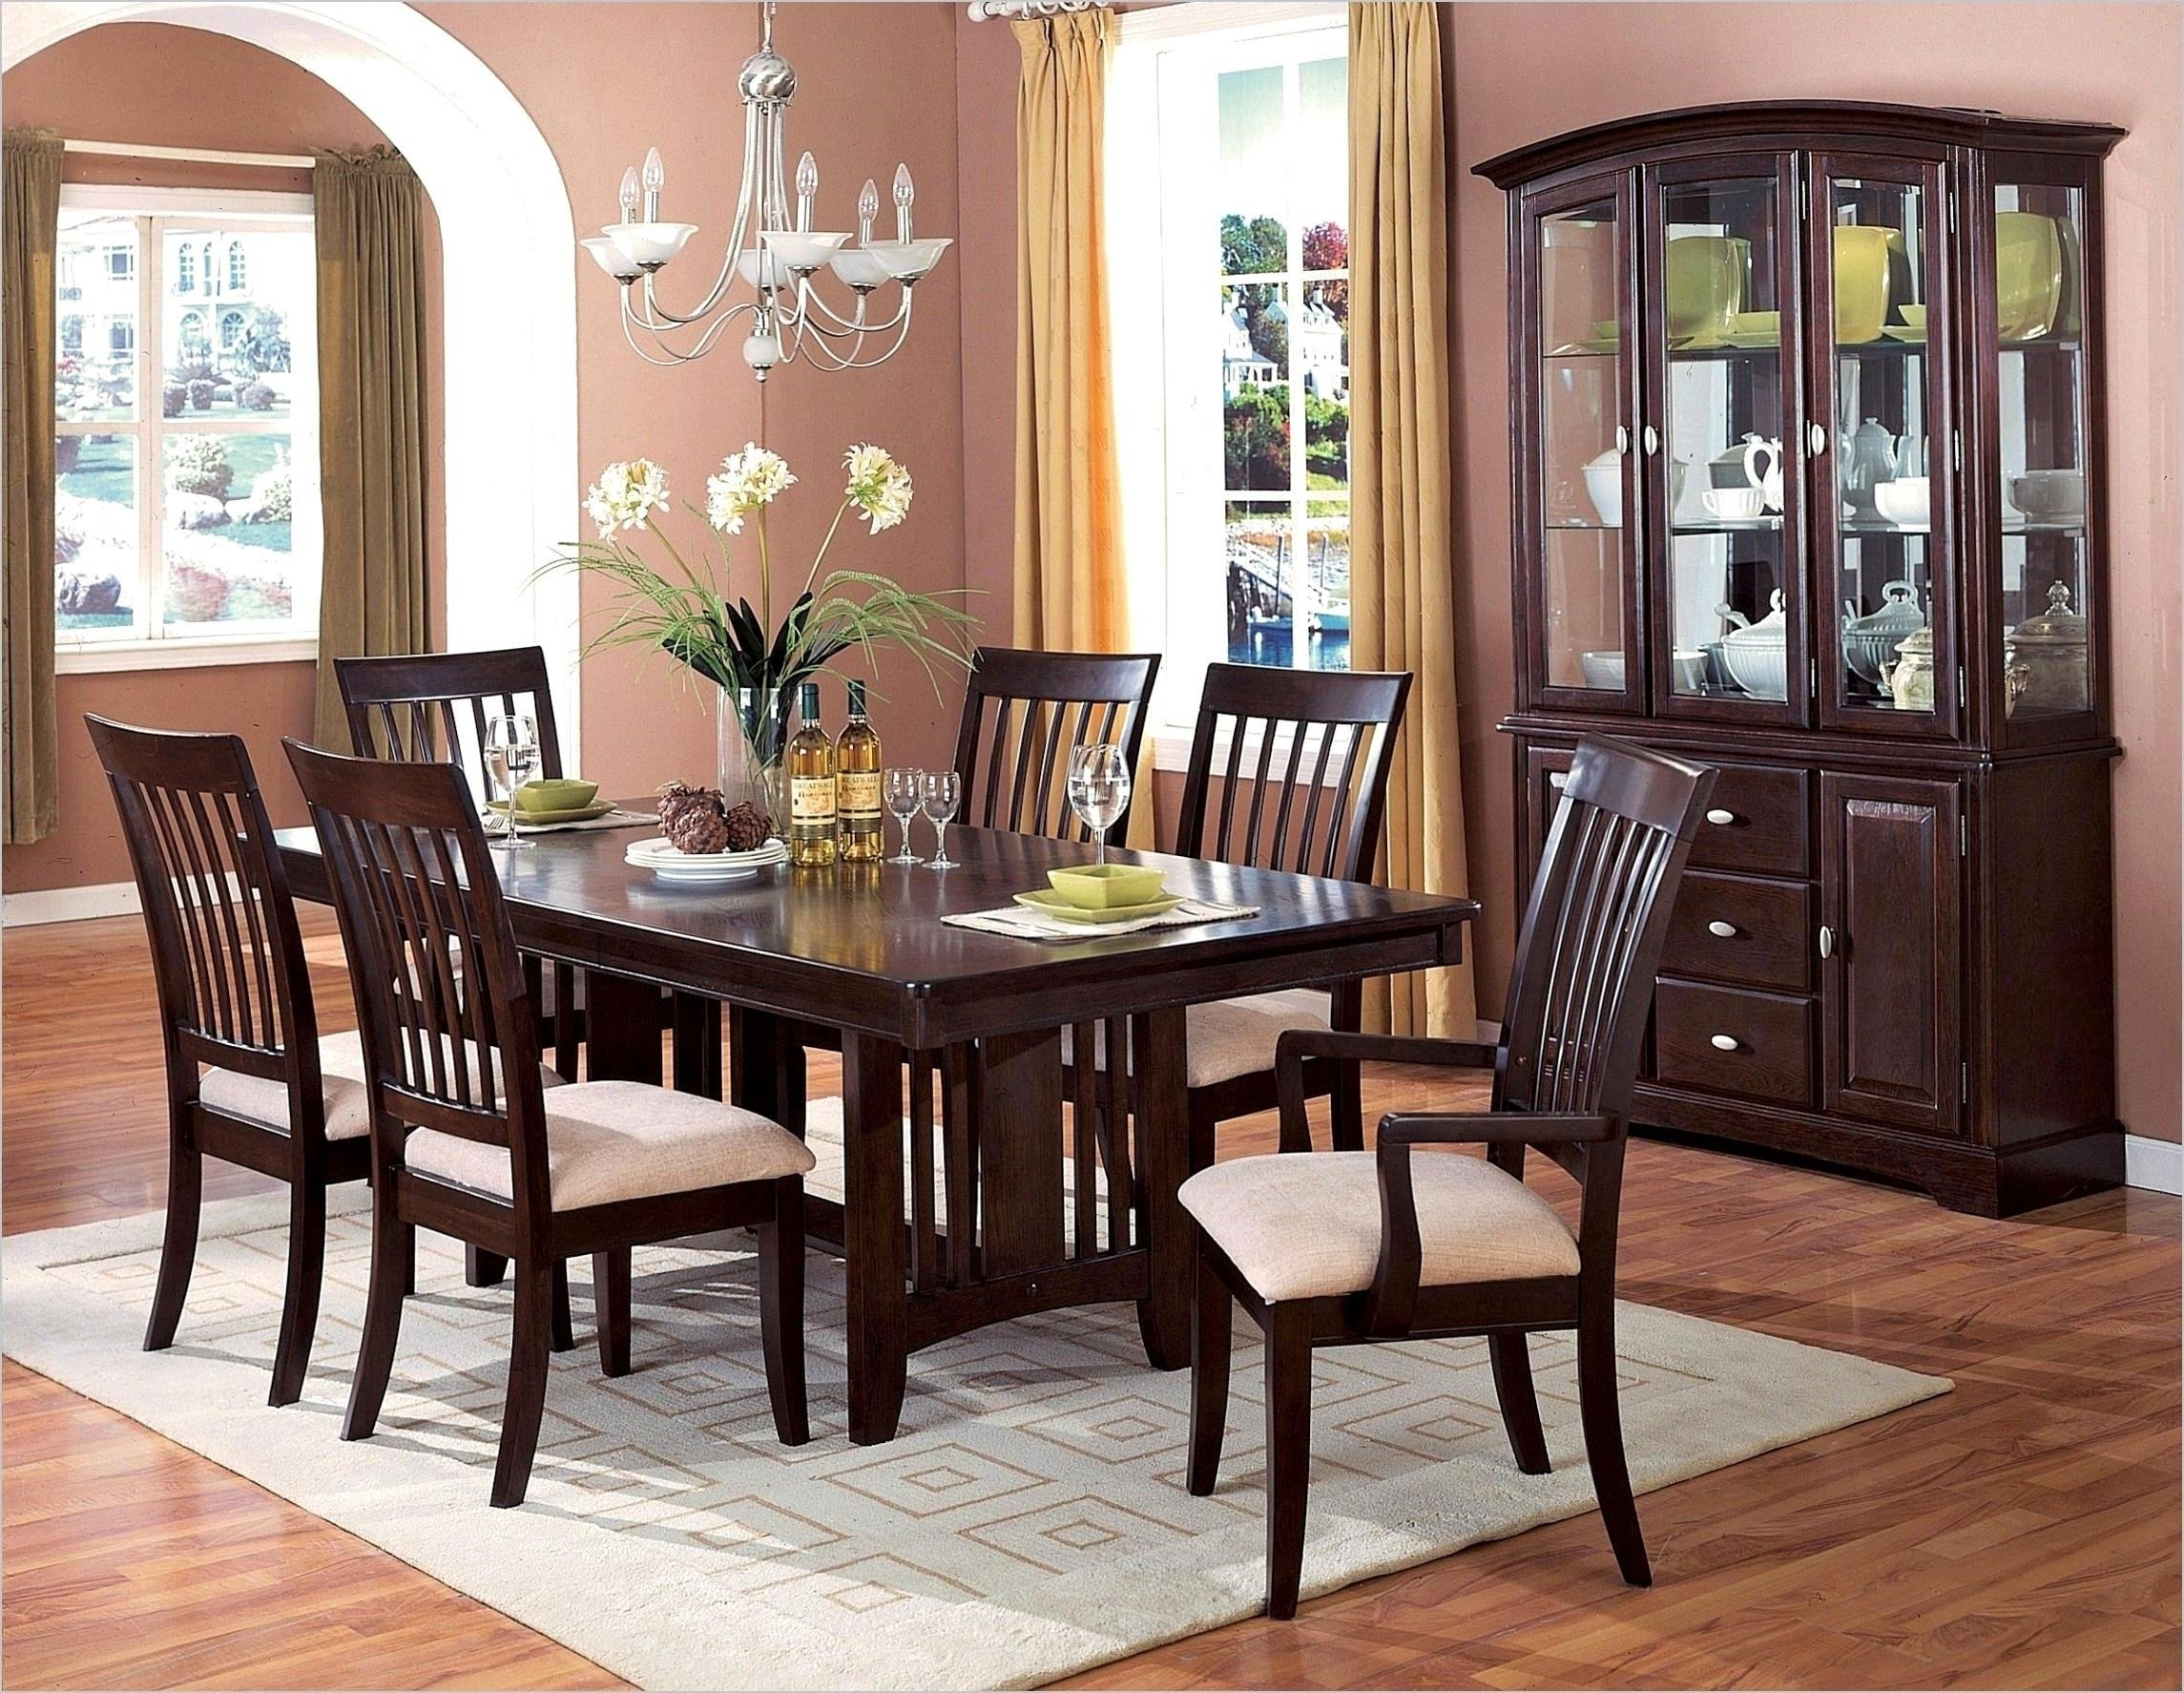 10 Amazing Dining Room Decorating Ideas On A Budget inspiring inexpensive decorating ideas dining room dining room 2020